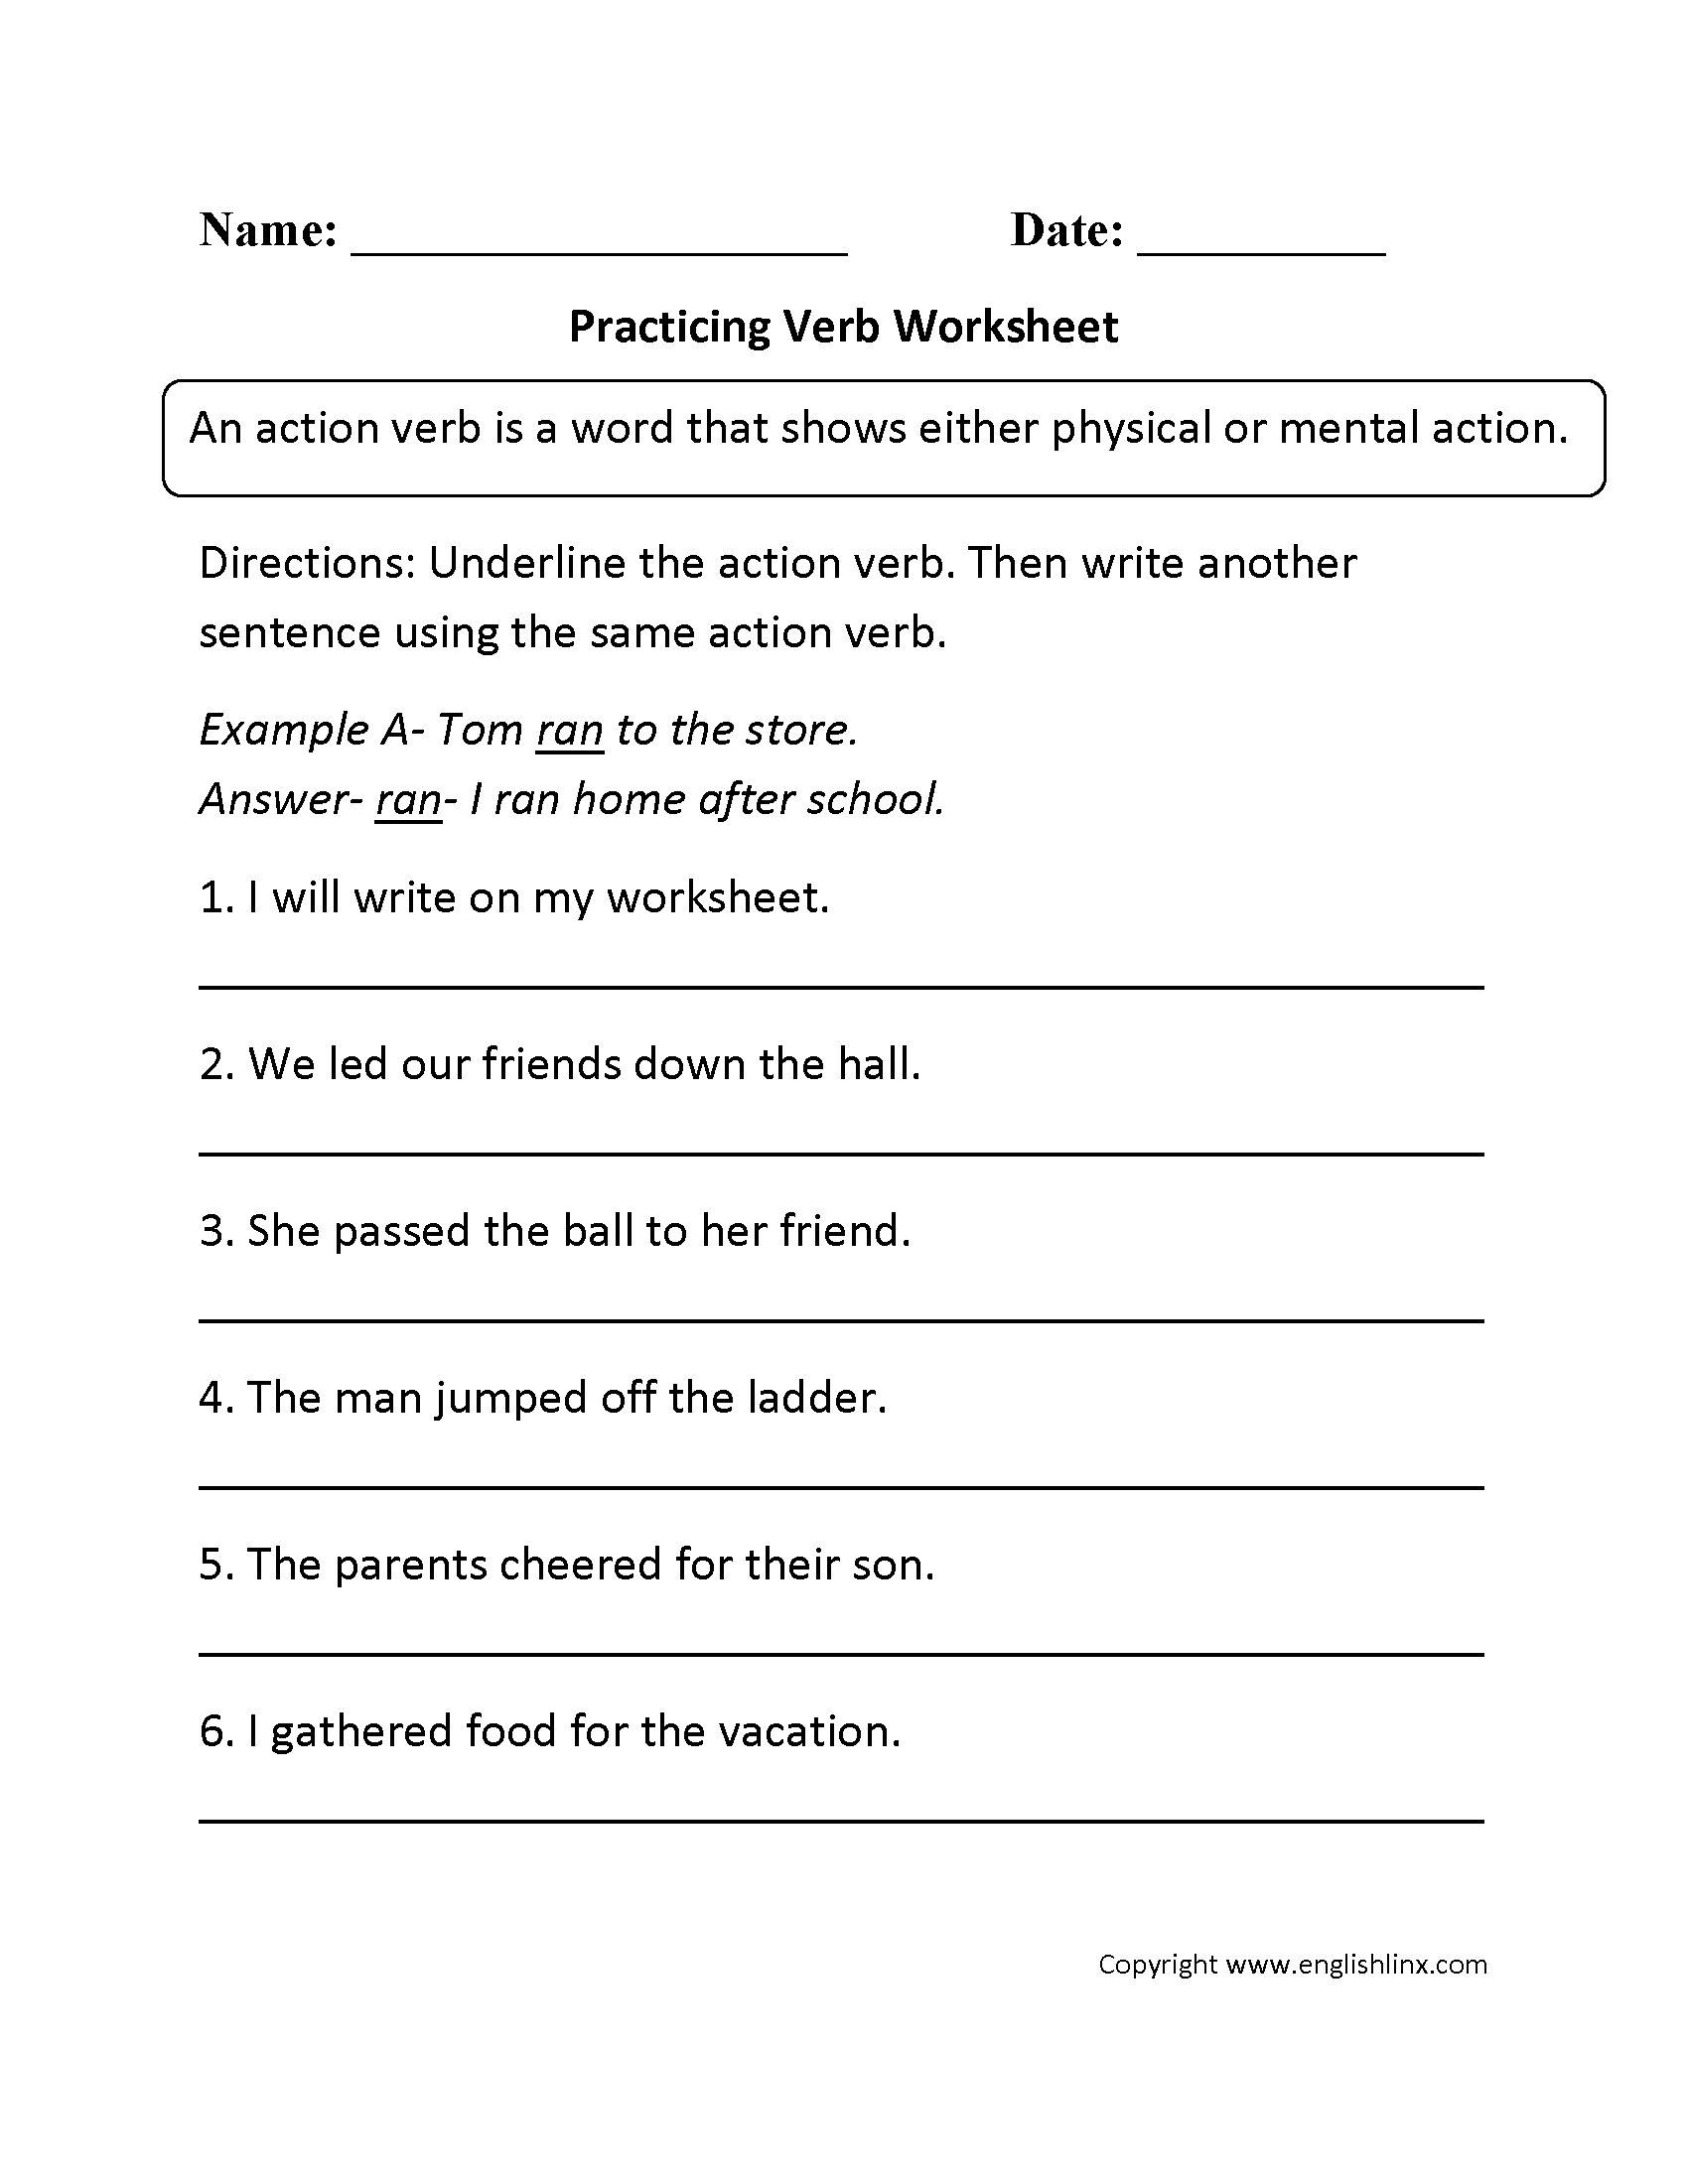 19 Best Images Of Irregular Verbs Worksheets 6th Grade